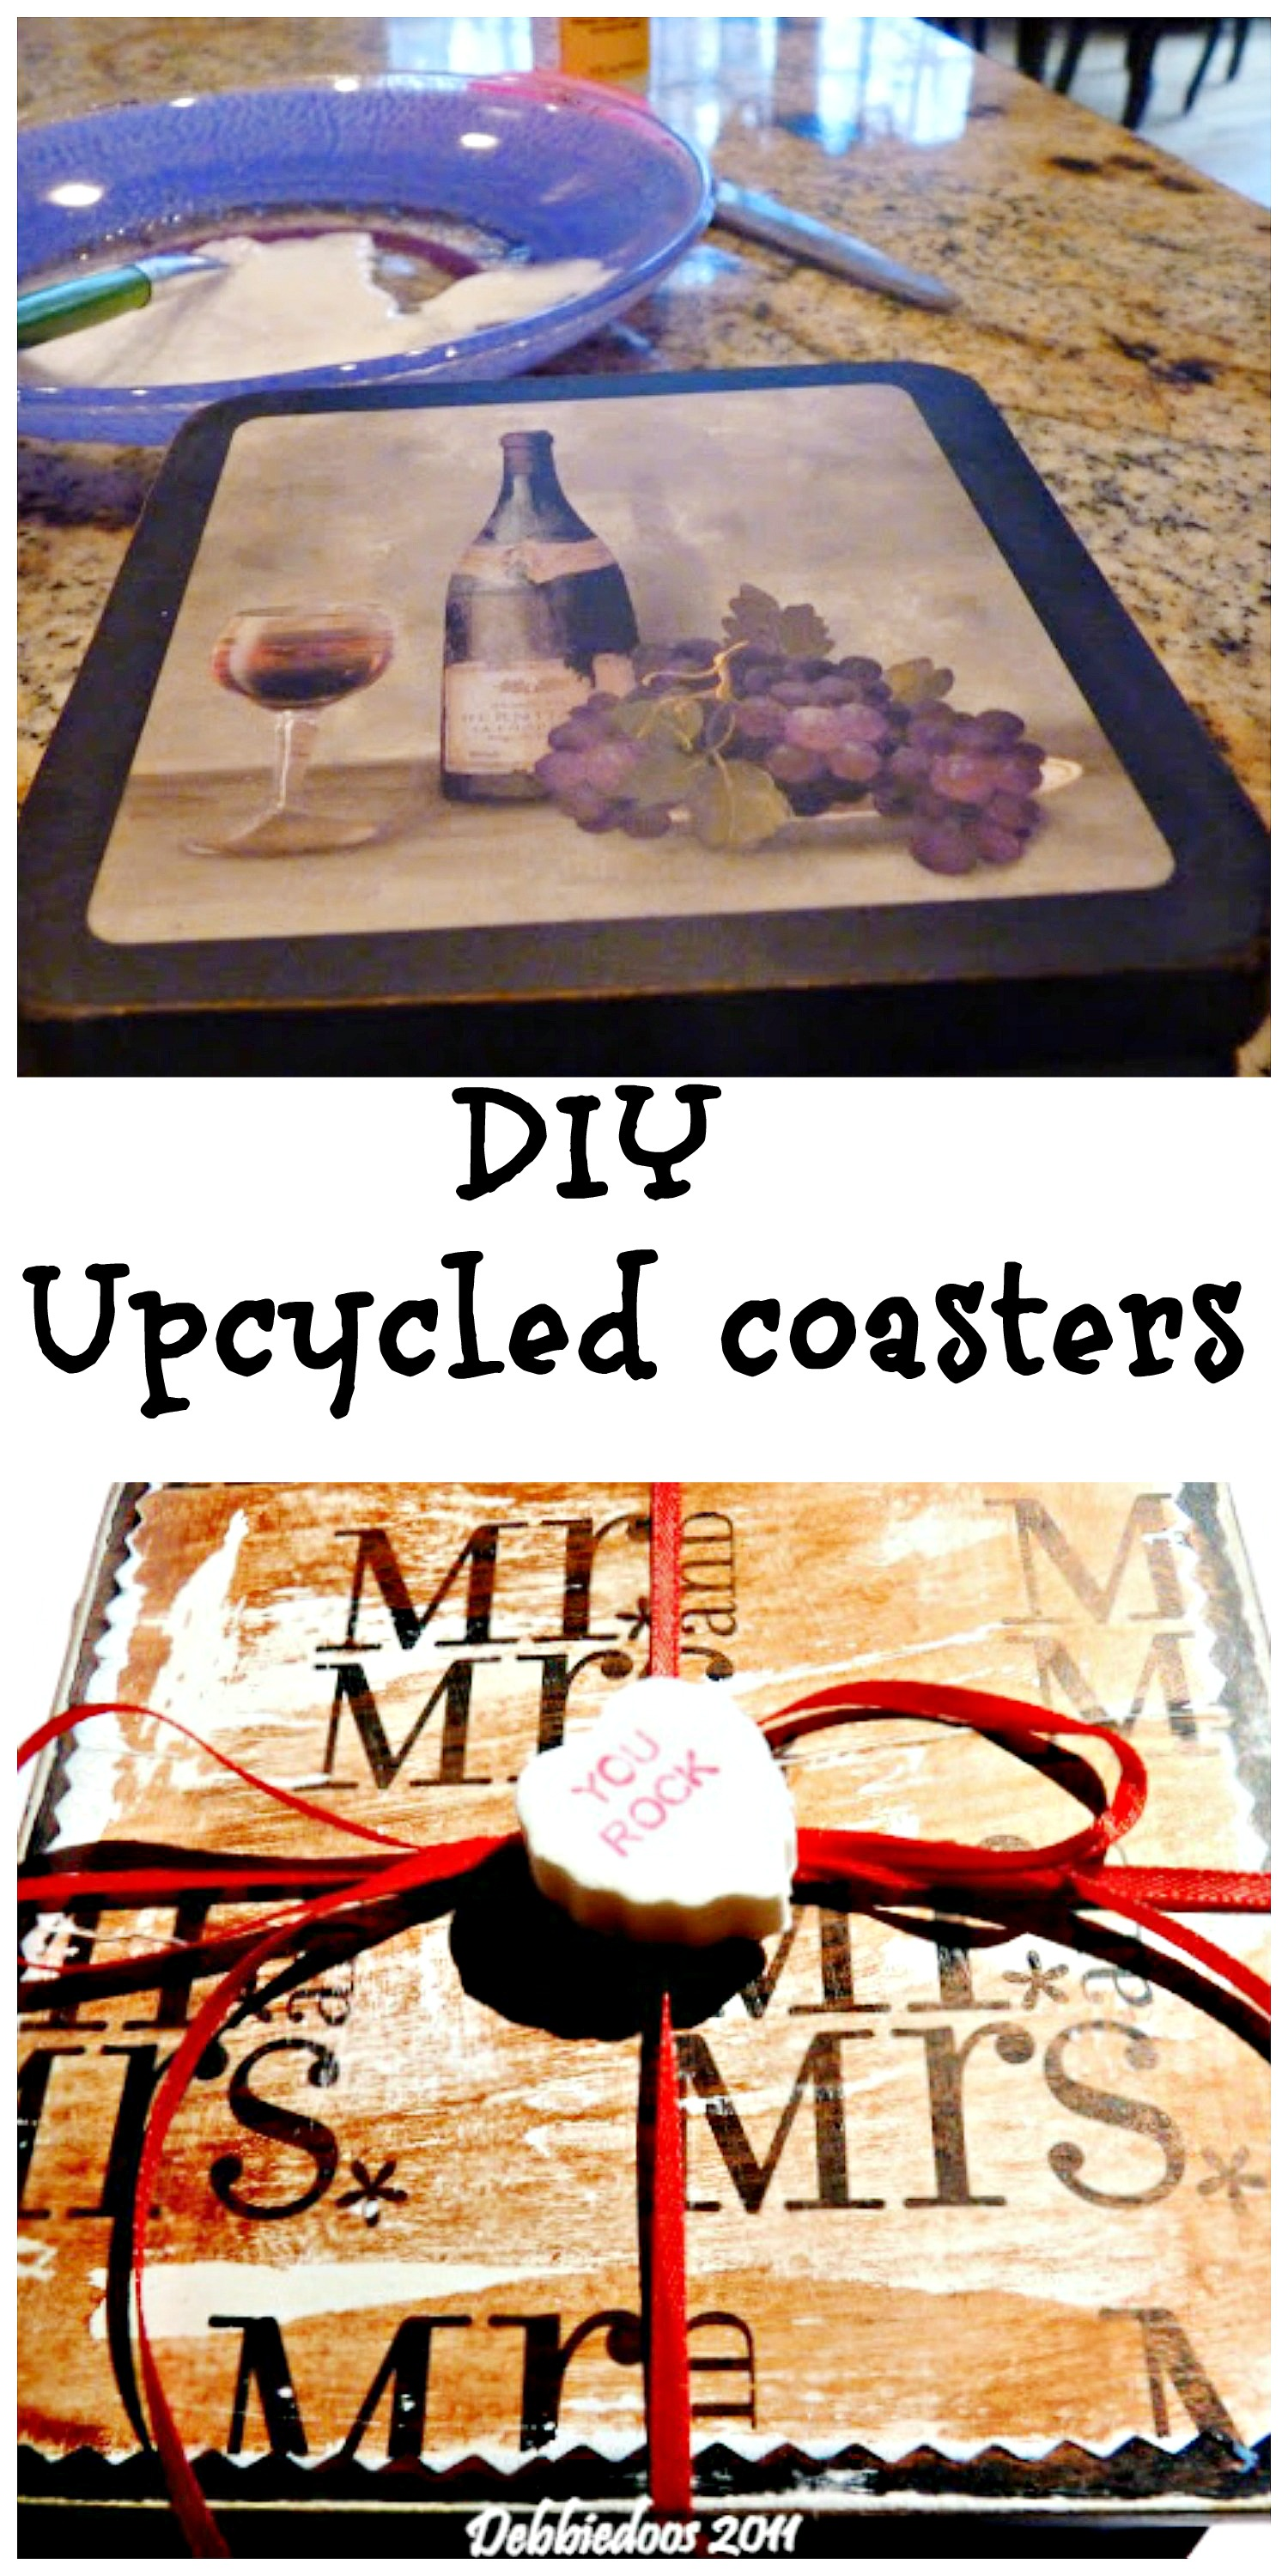 diy upcycled coasters